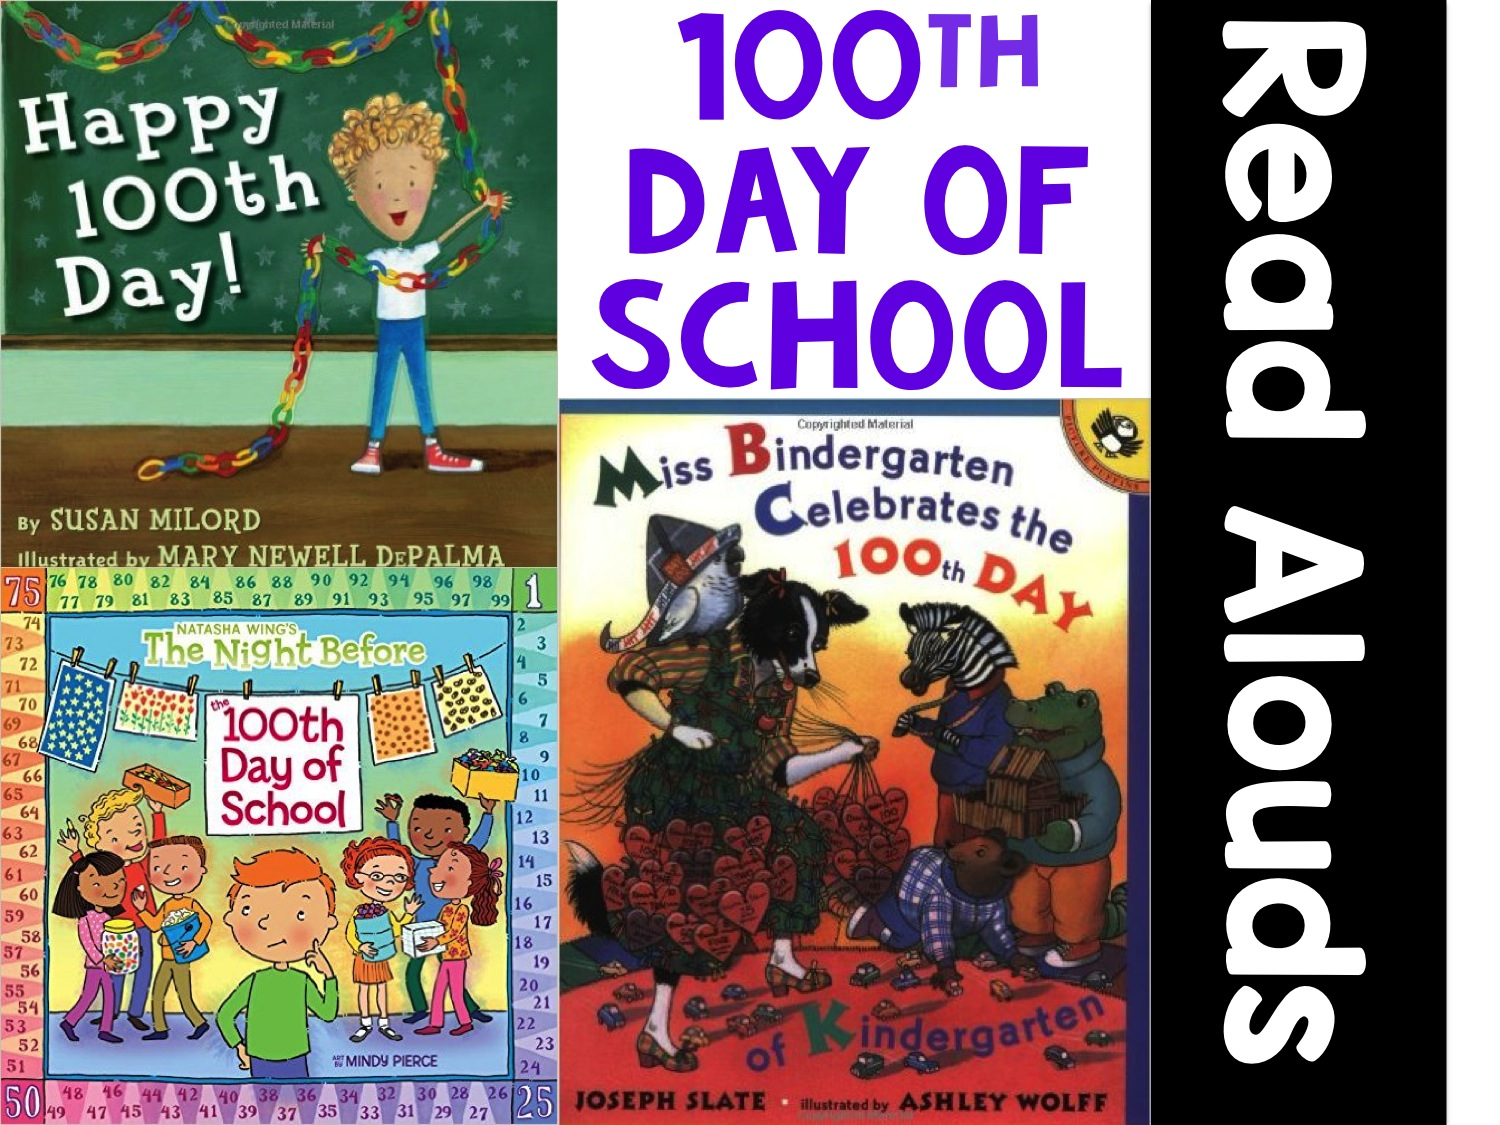 100th day of school crown template.html